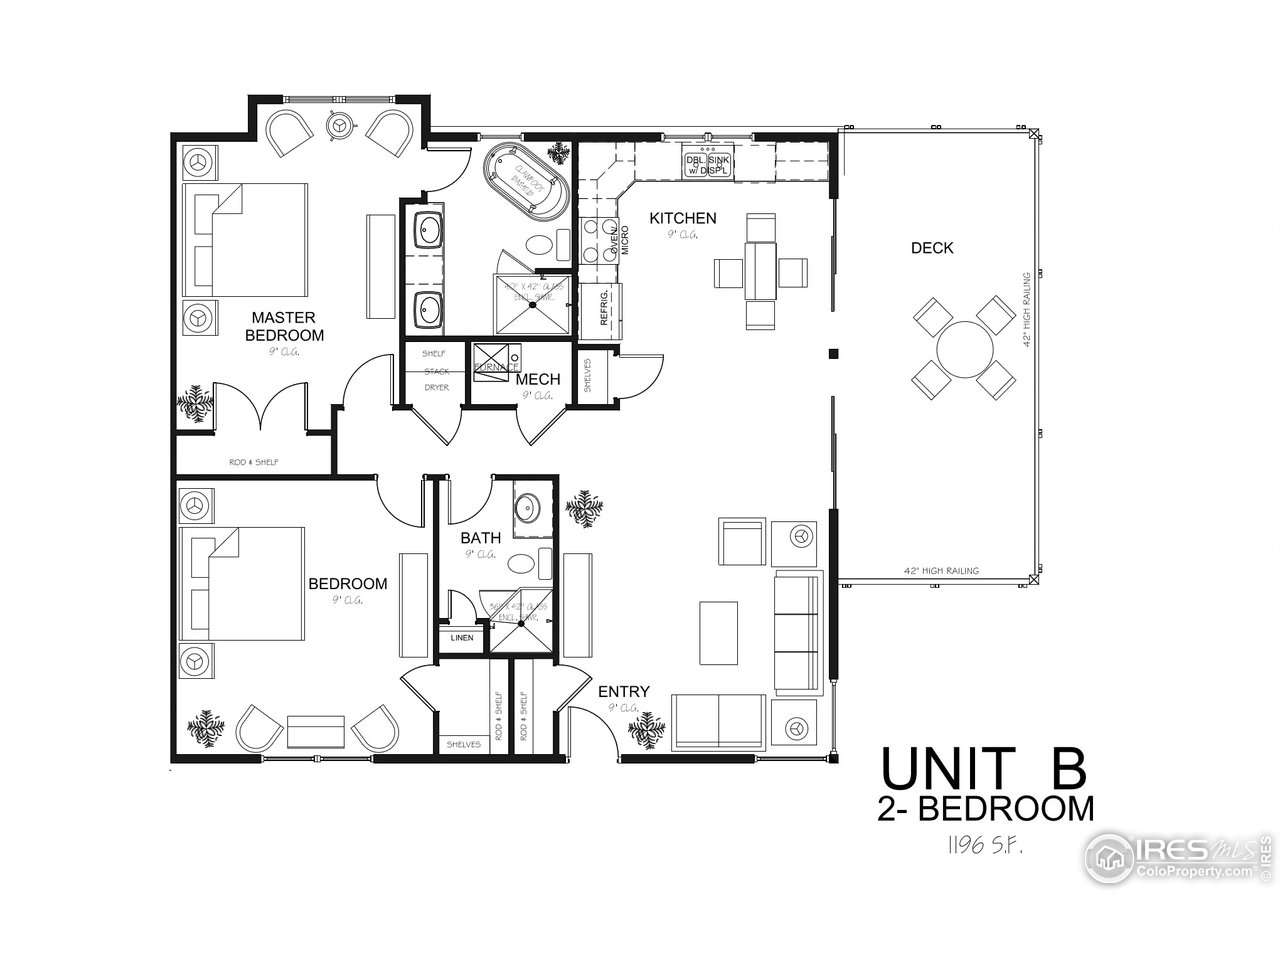 Oasis 2 Bedroom Unit B Floor Plan